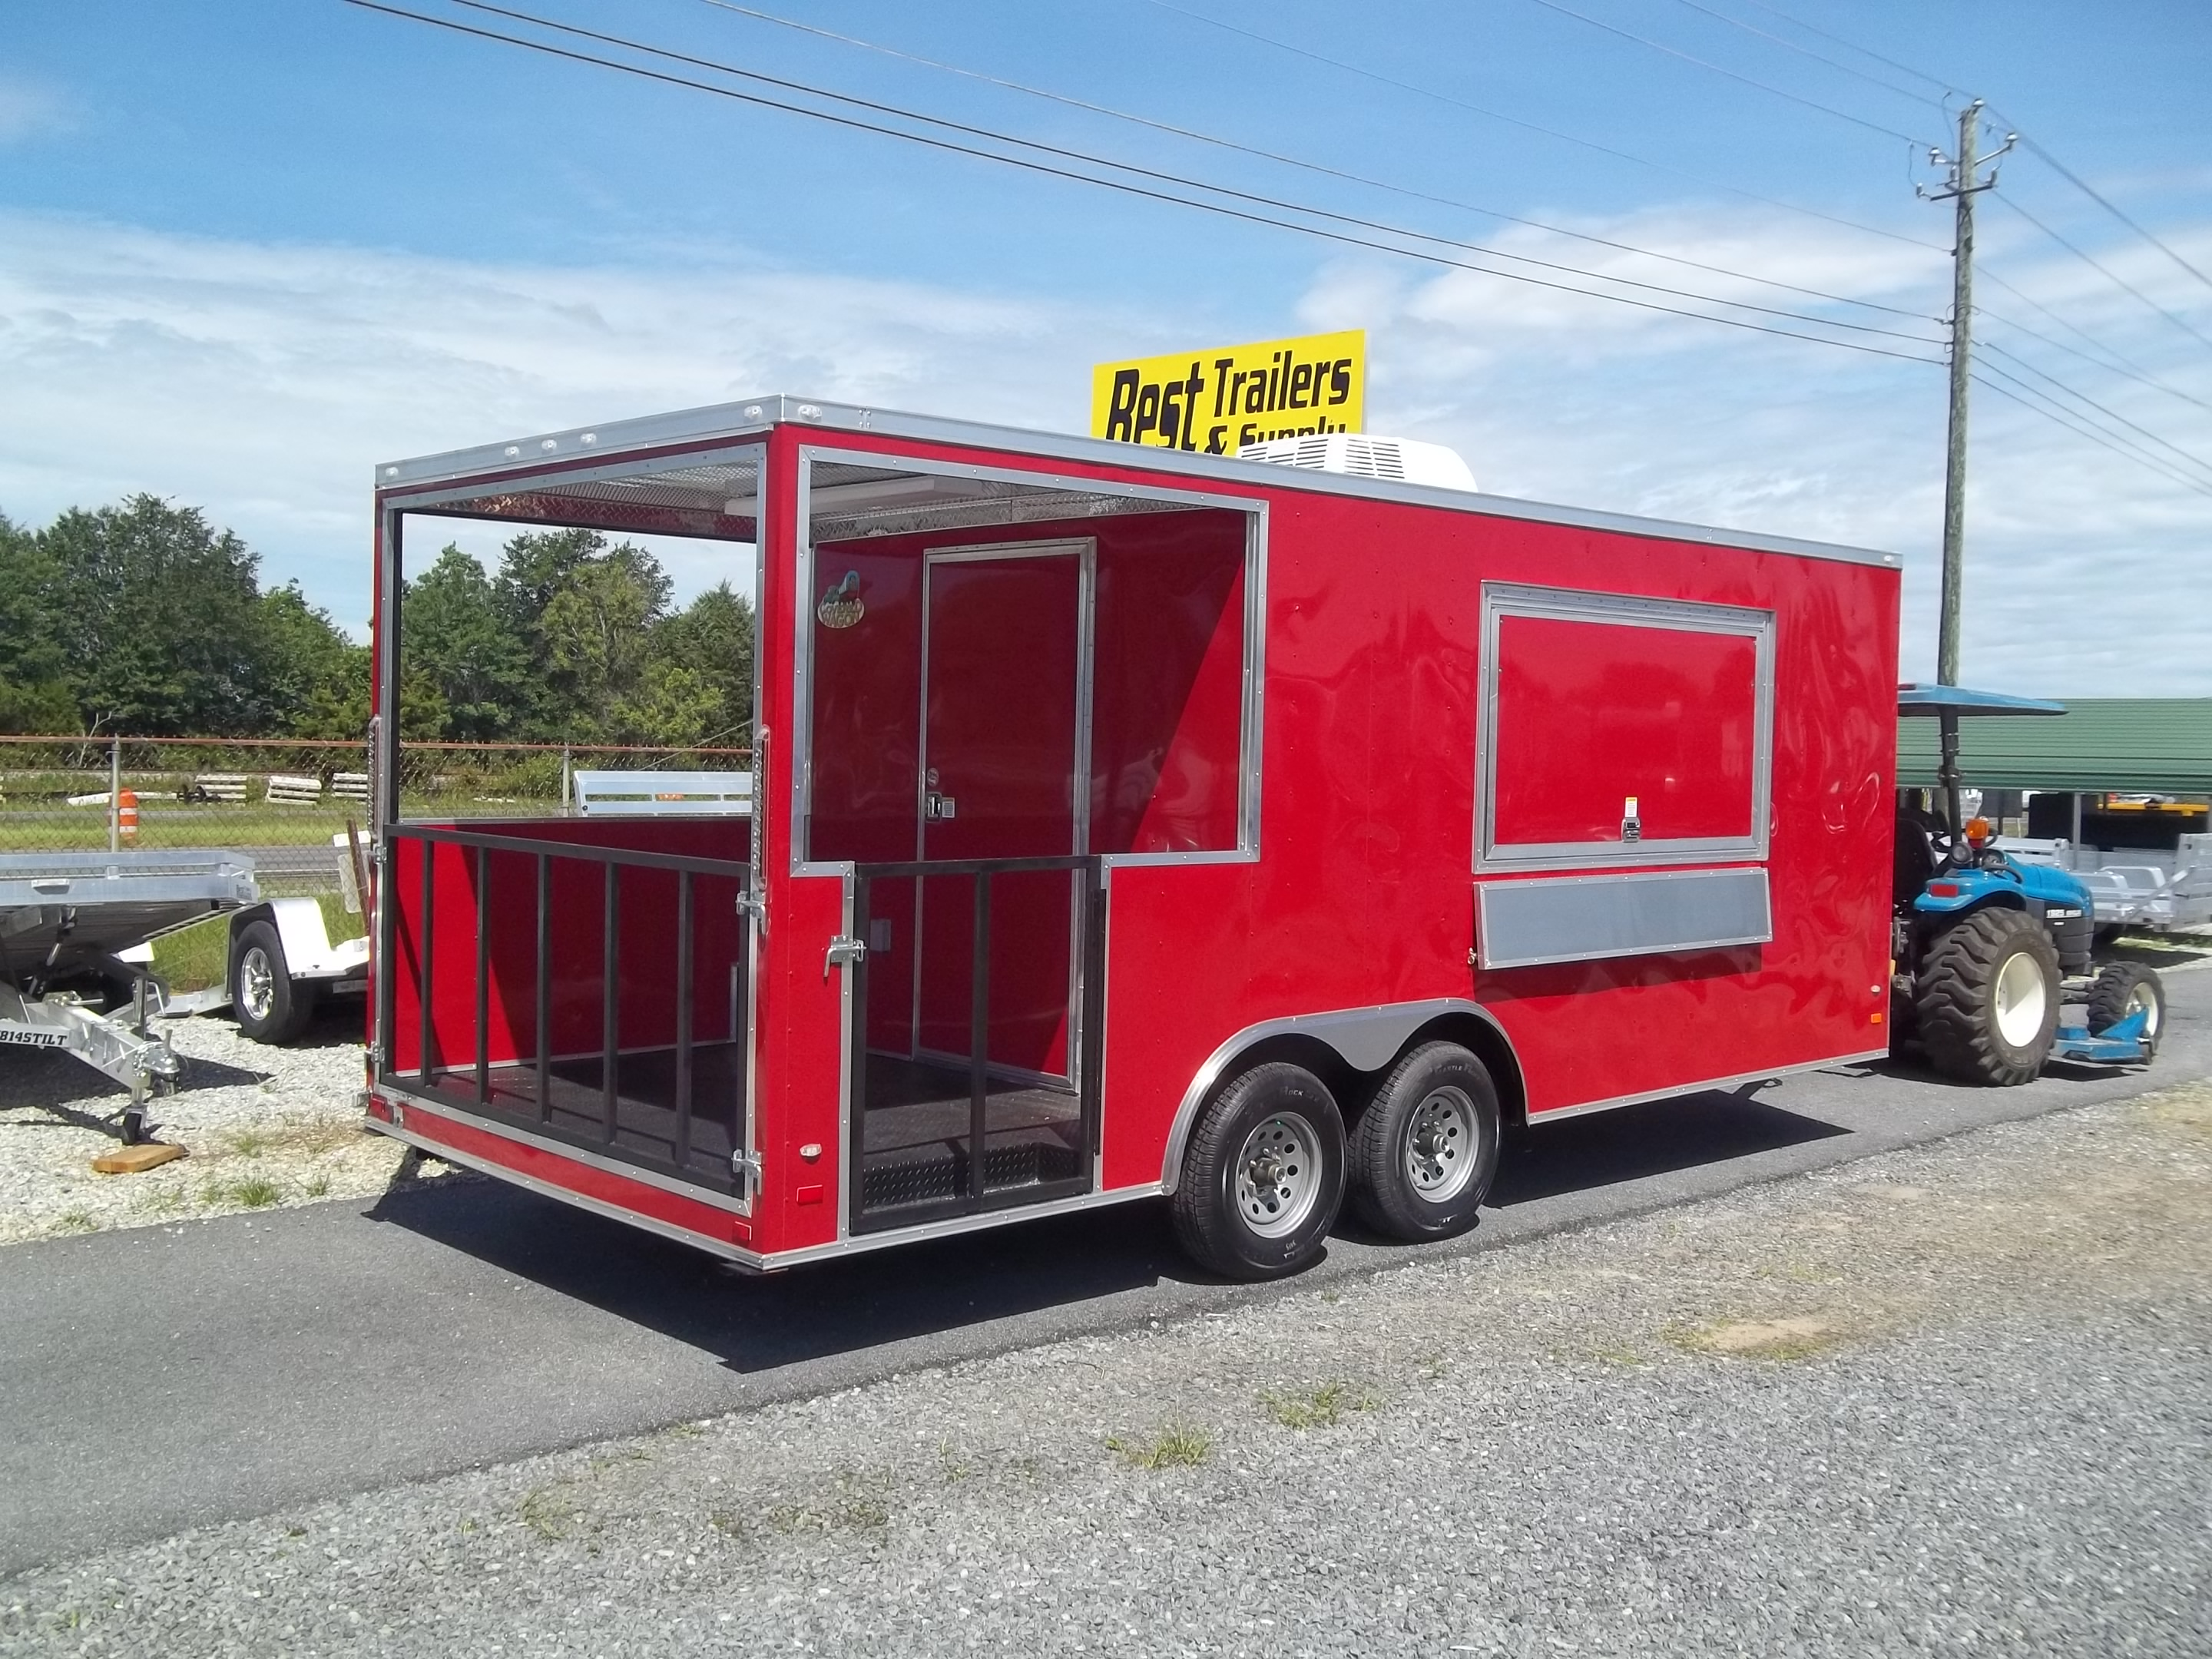 Buy Amp Sell New Amp Used Trailers 8 5x20 Enclosed Bbq Porch